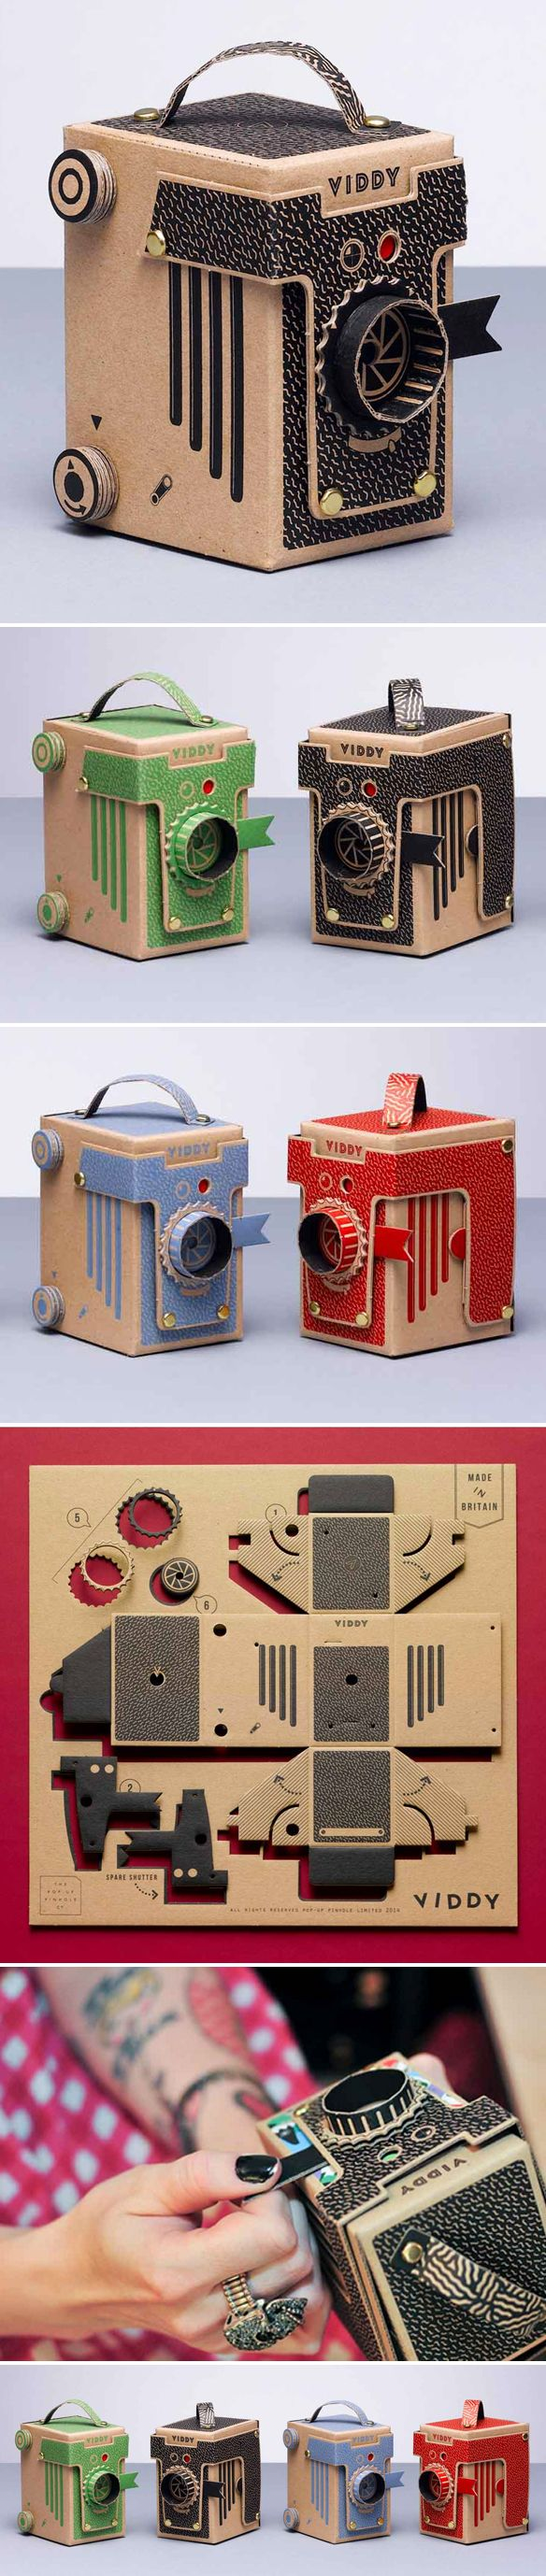 screenprinted, DIY pinhole camera! Realy cool made from paperboard packaging stock PD